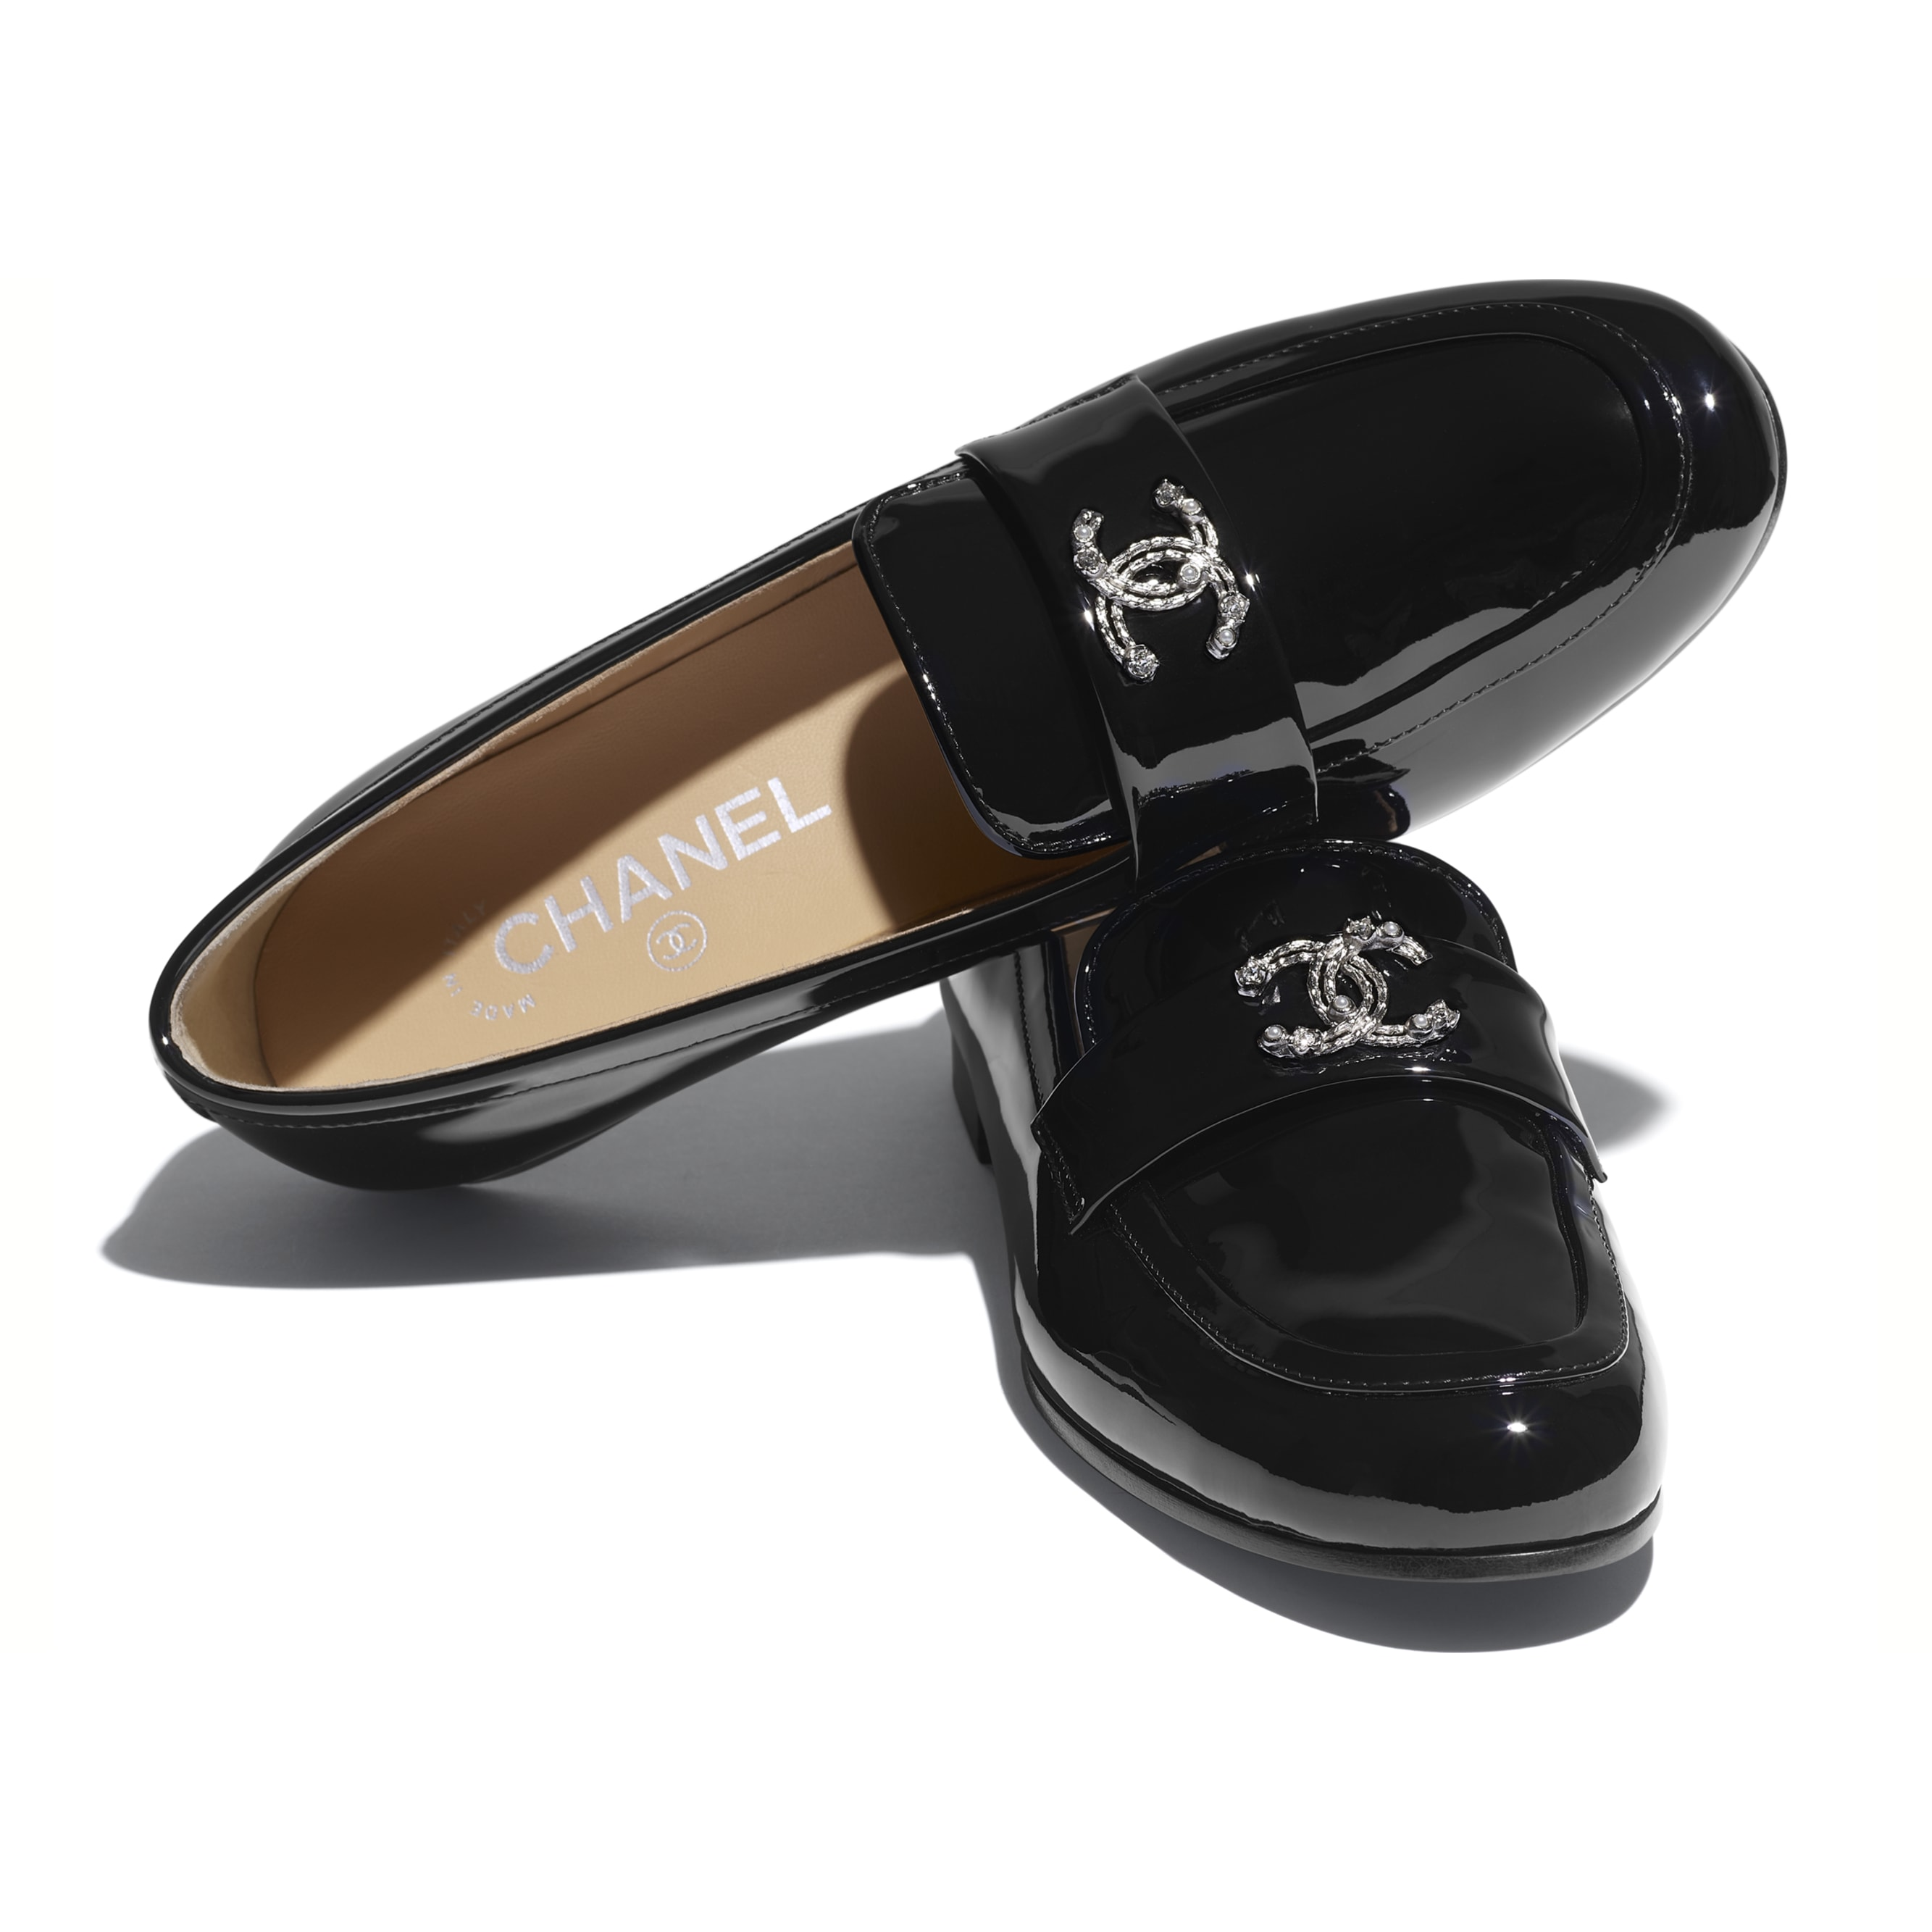 Loafers - Black - Patent Calfskin - CHANEL - Extra view - see standard sized version